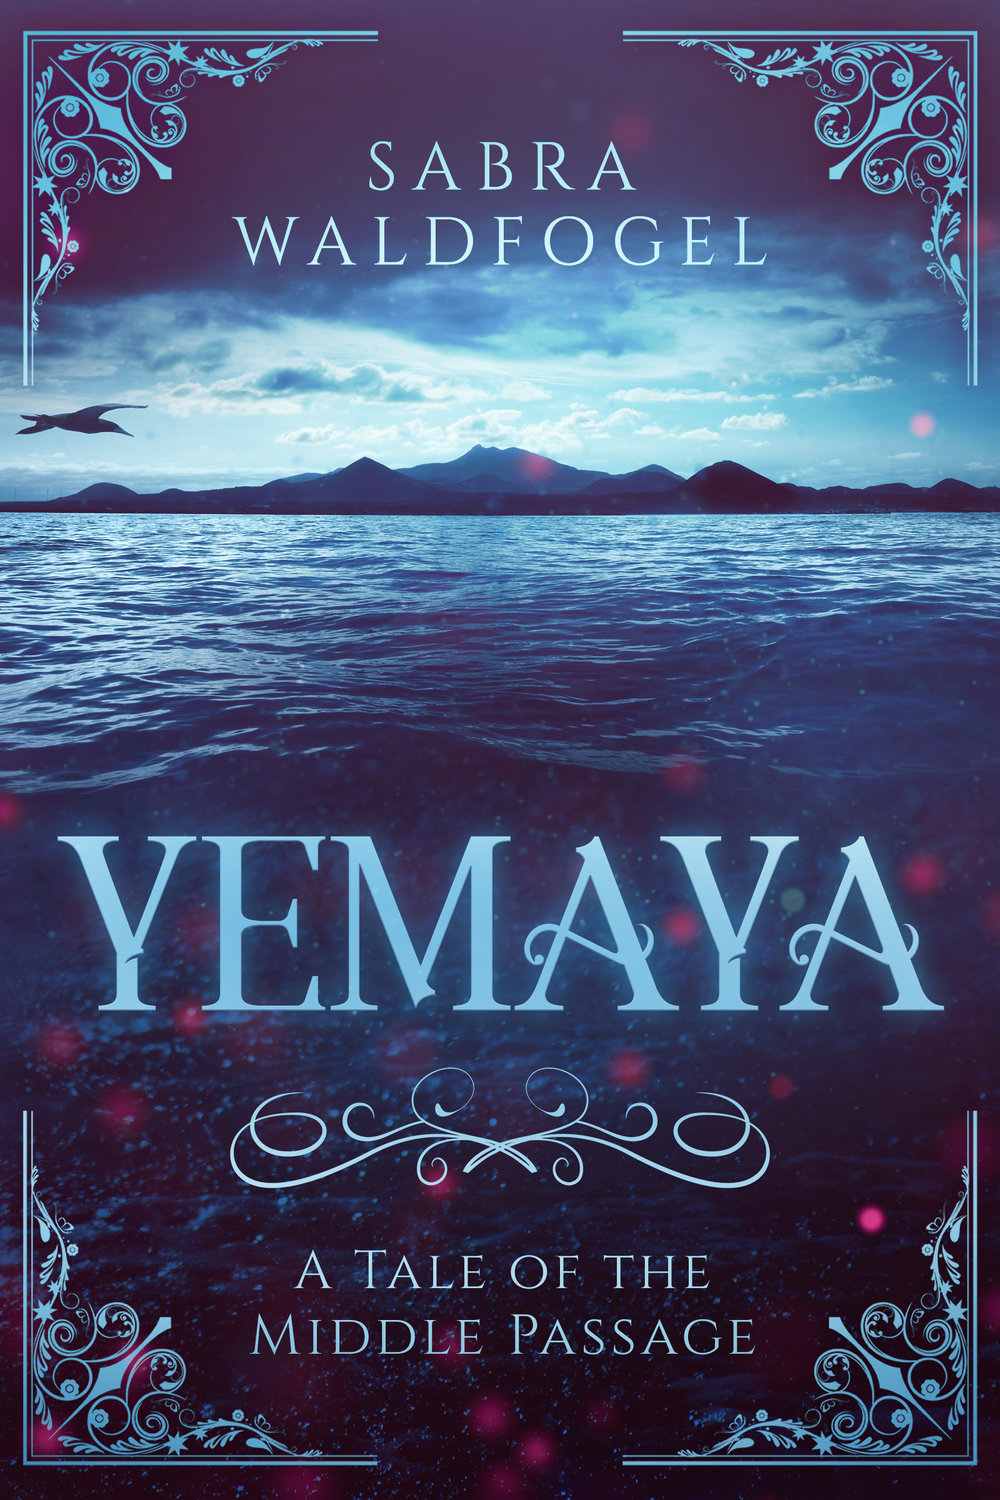 Yemaya_ebook cover.jpg